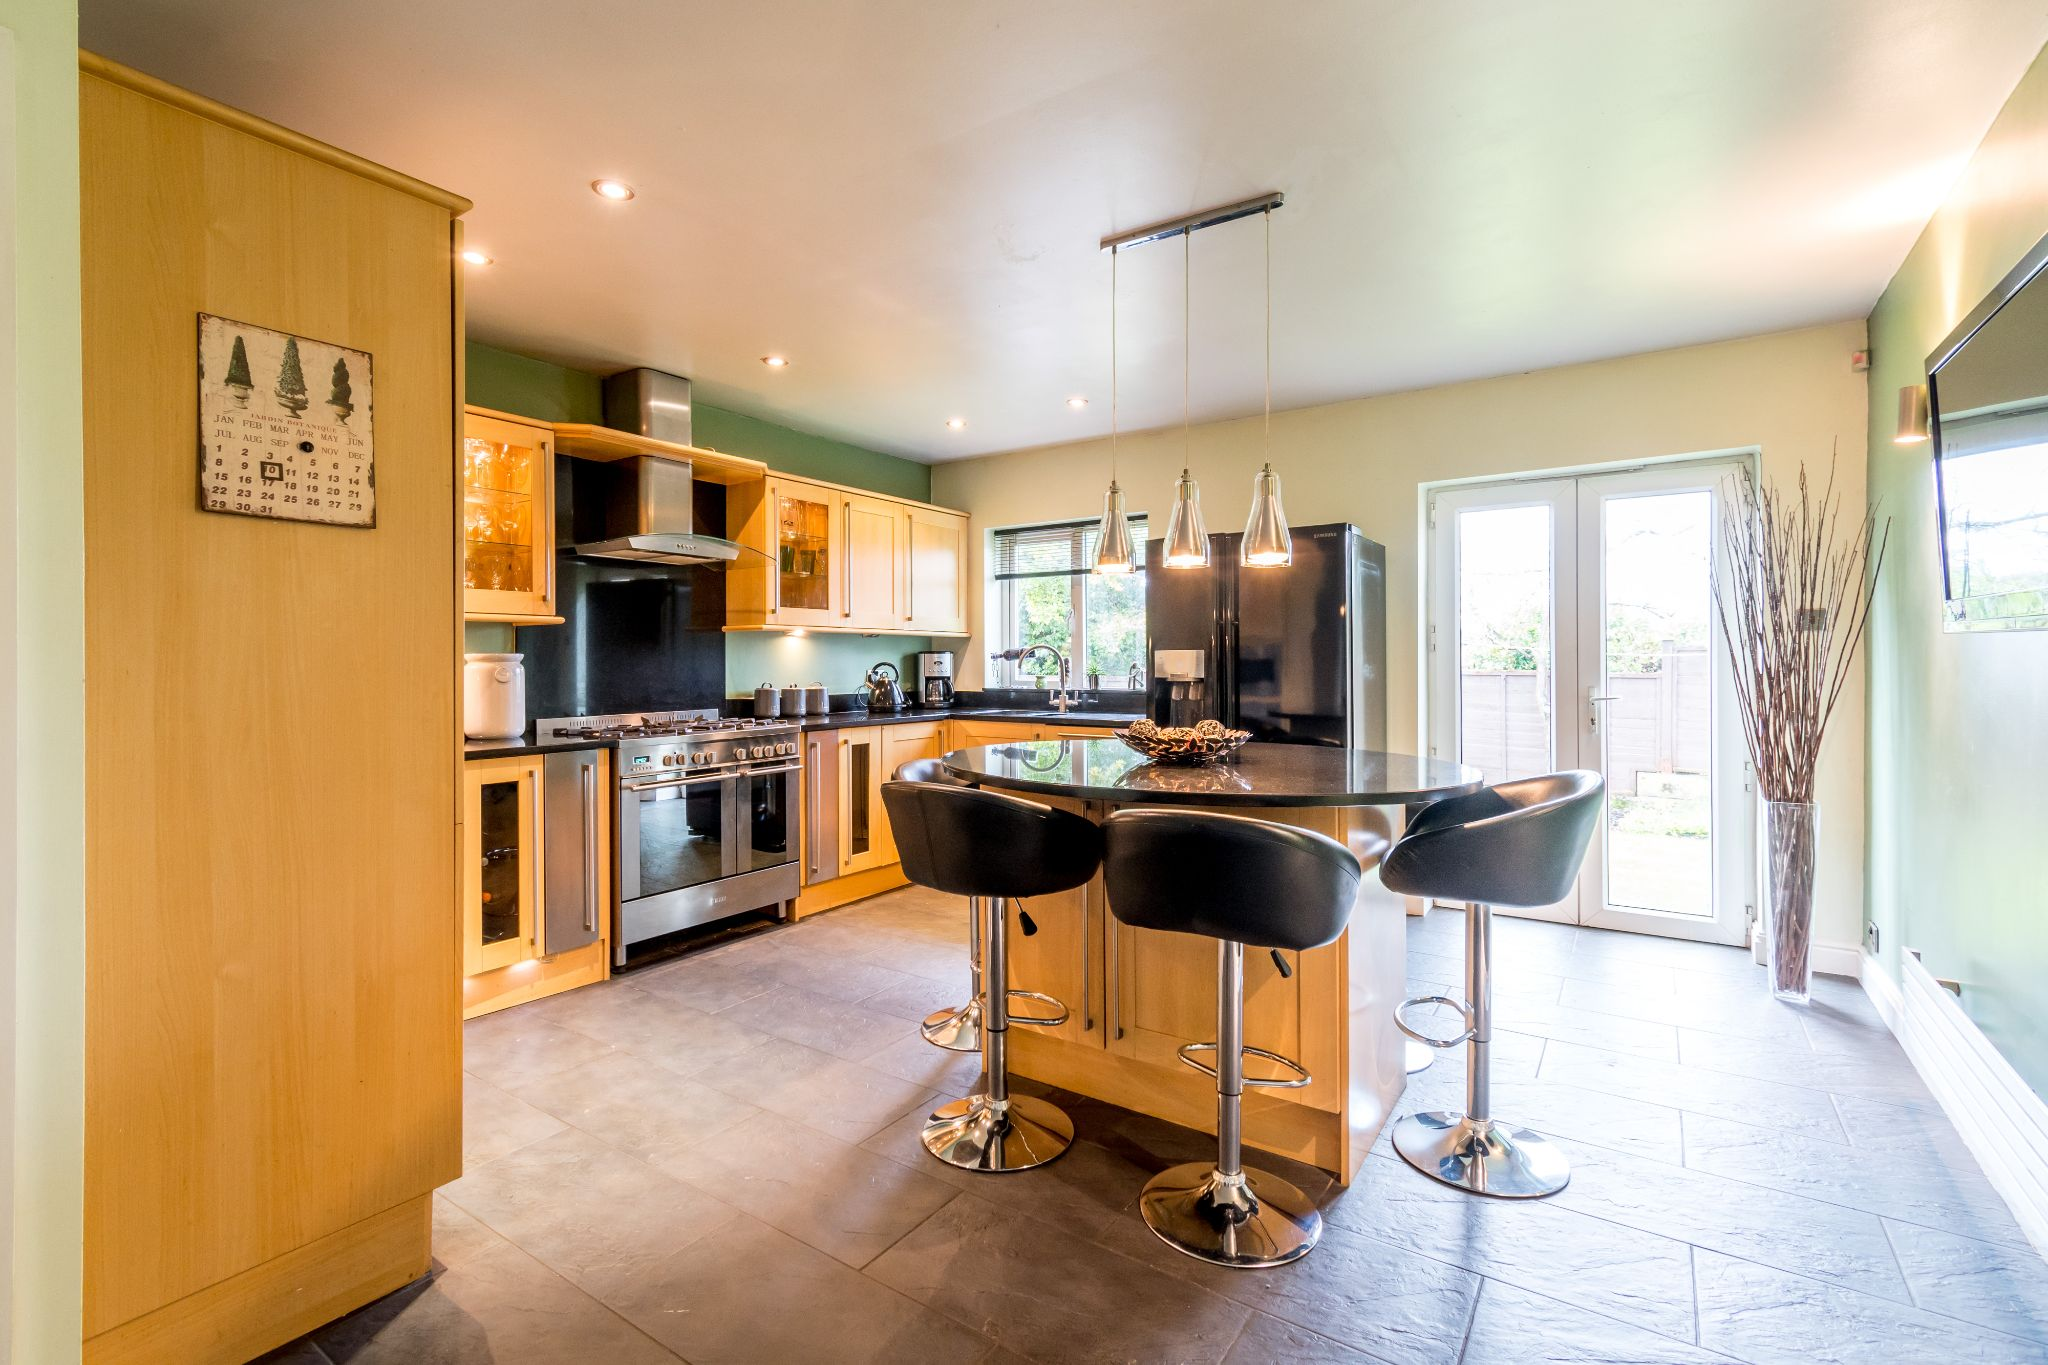 5 bedroom detached house SSTC in Brighouse - Dining kitchen